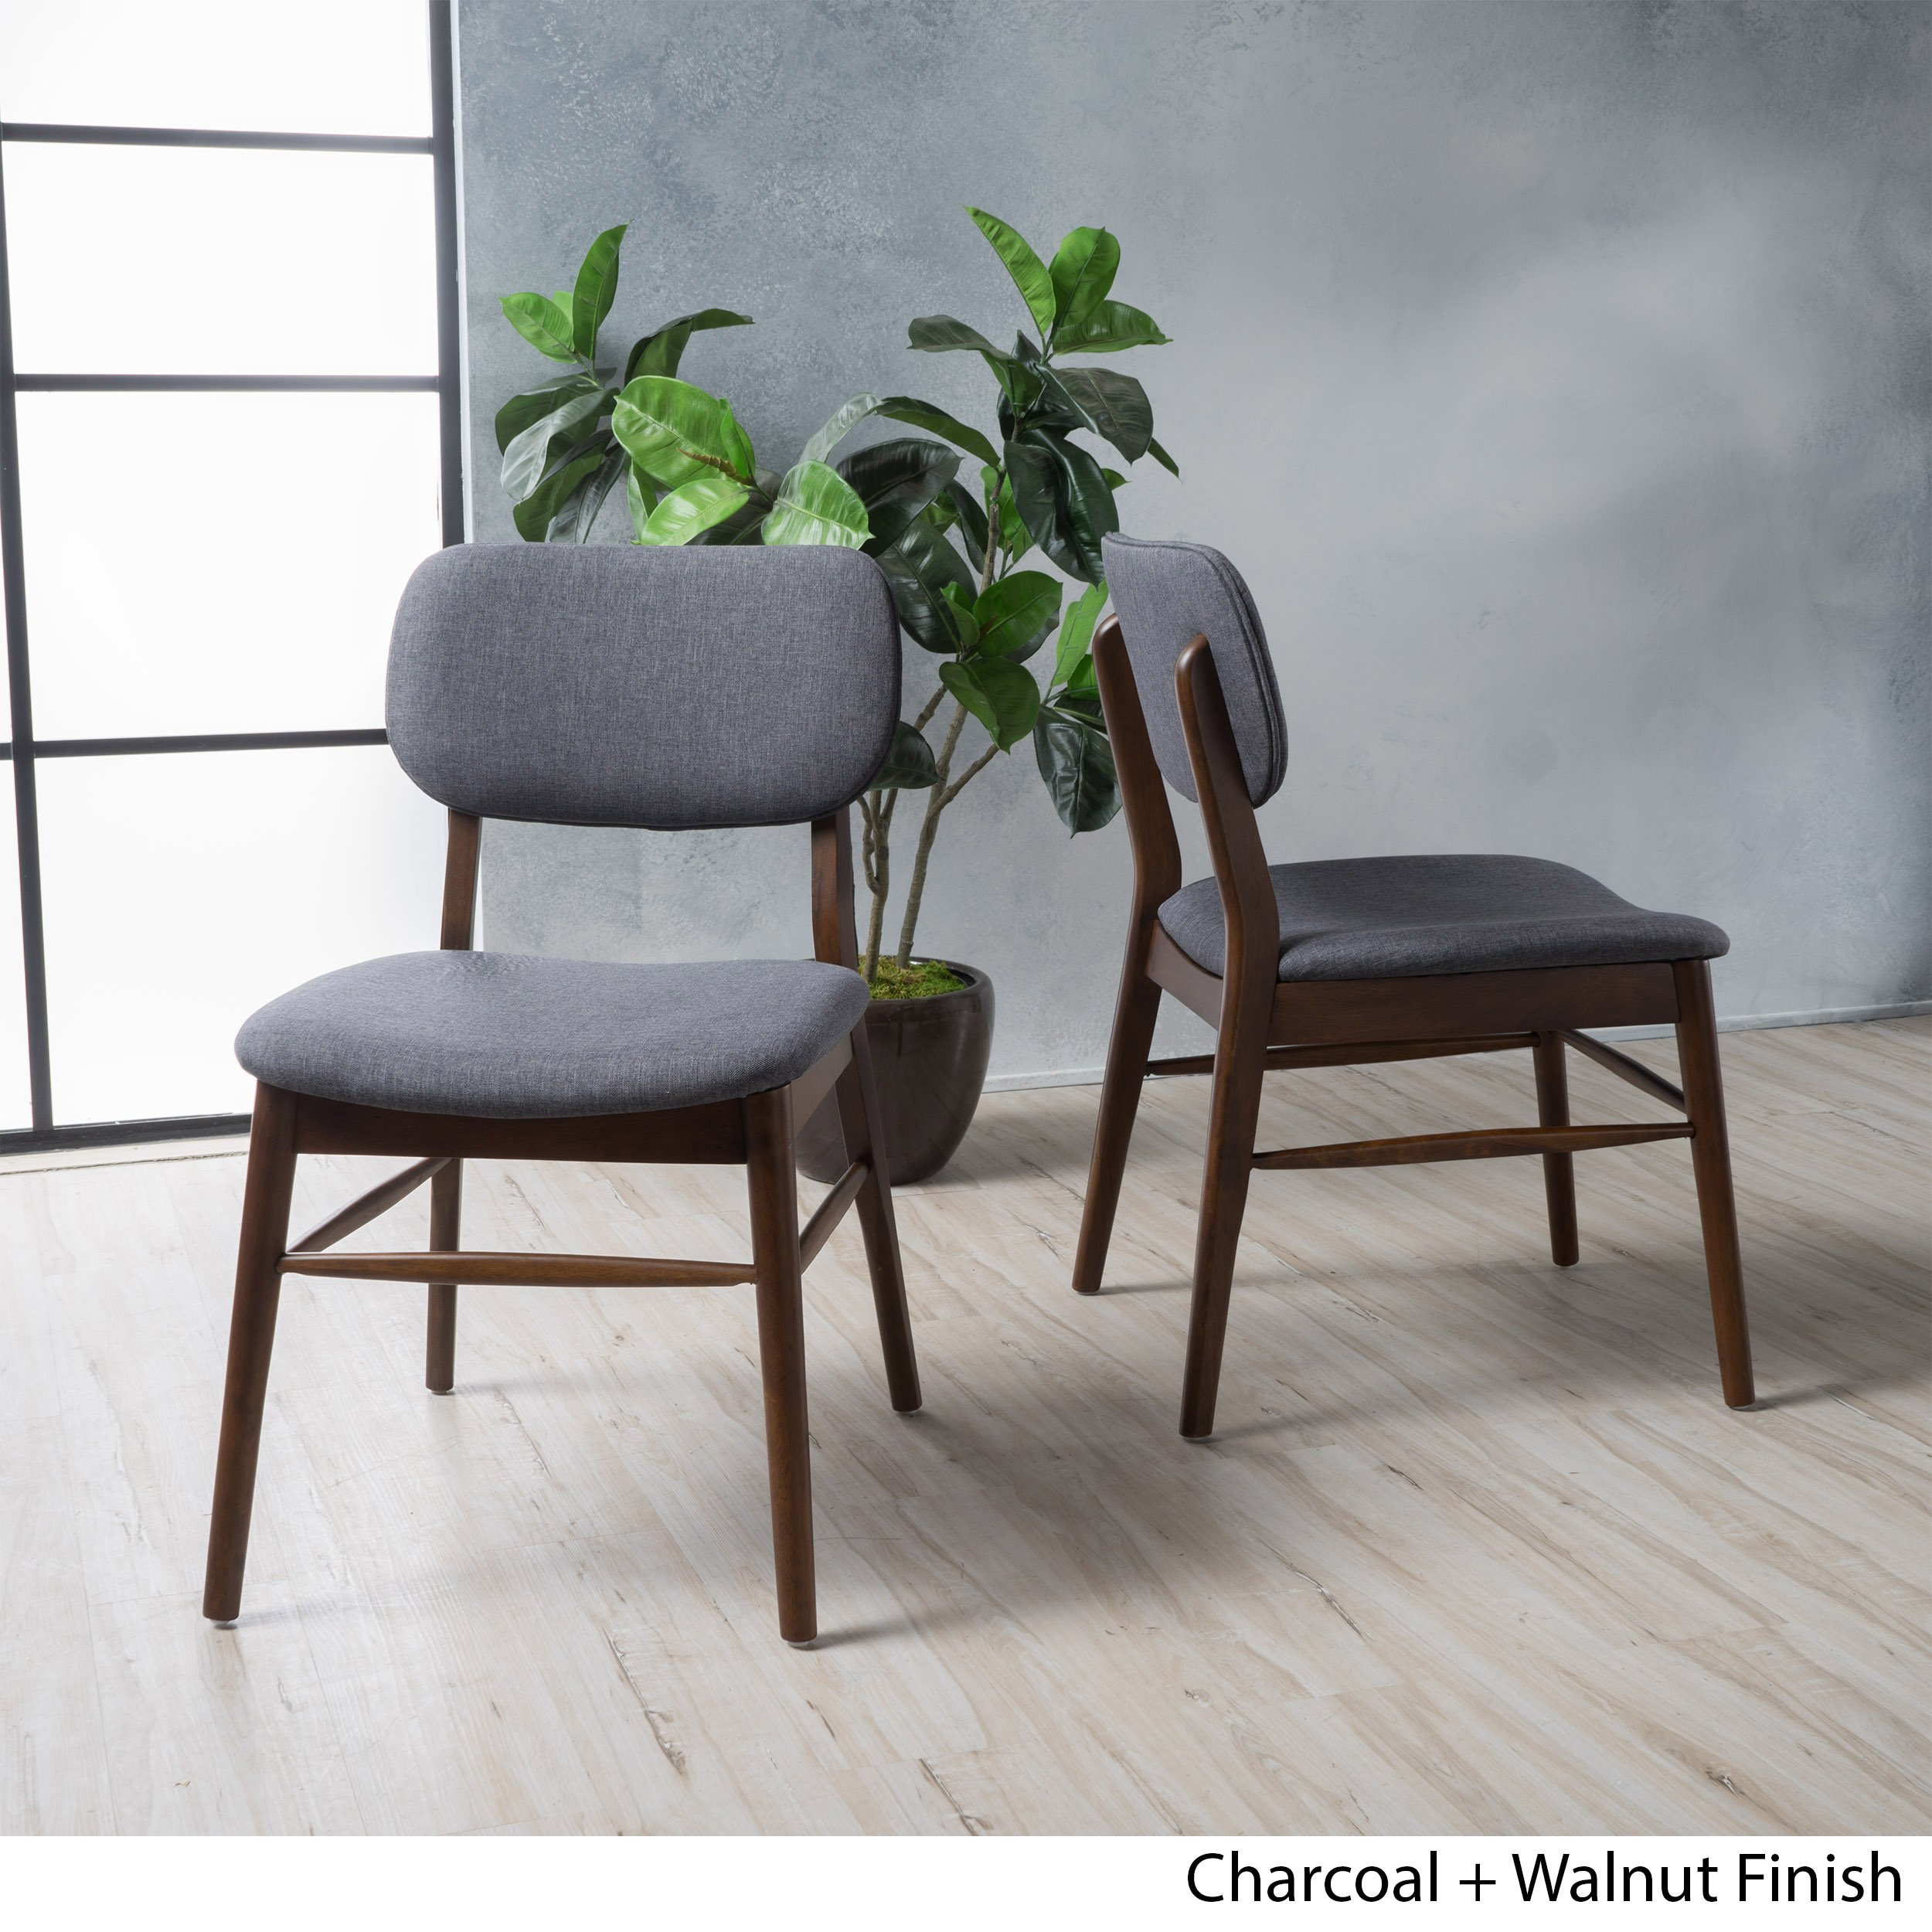 Christopher Knight Home 300014 Colette Fabric Dining Chairs (Set of 2), Charcoal